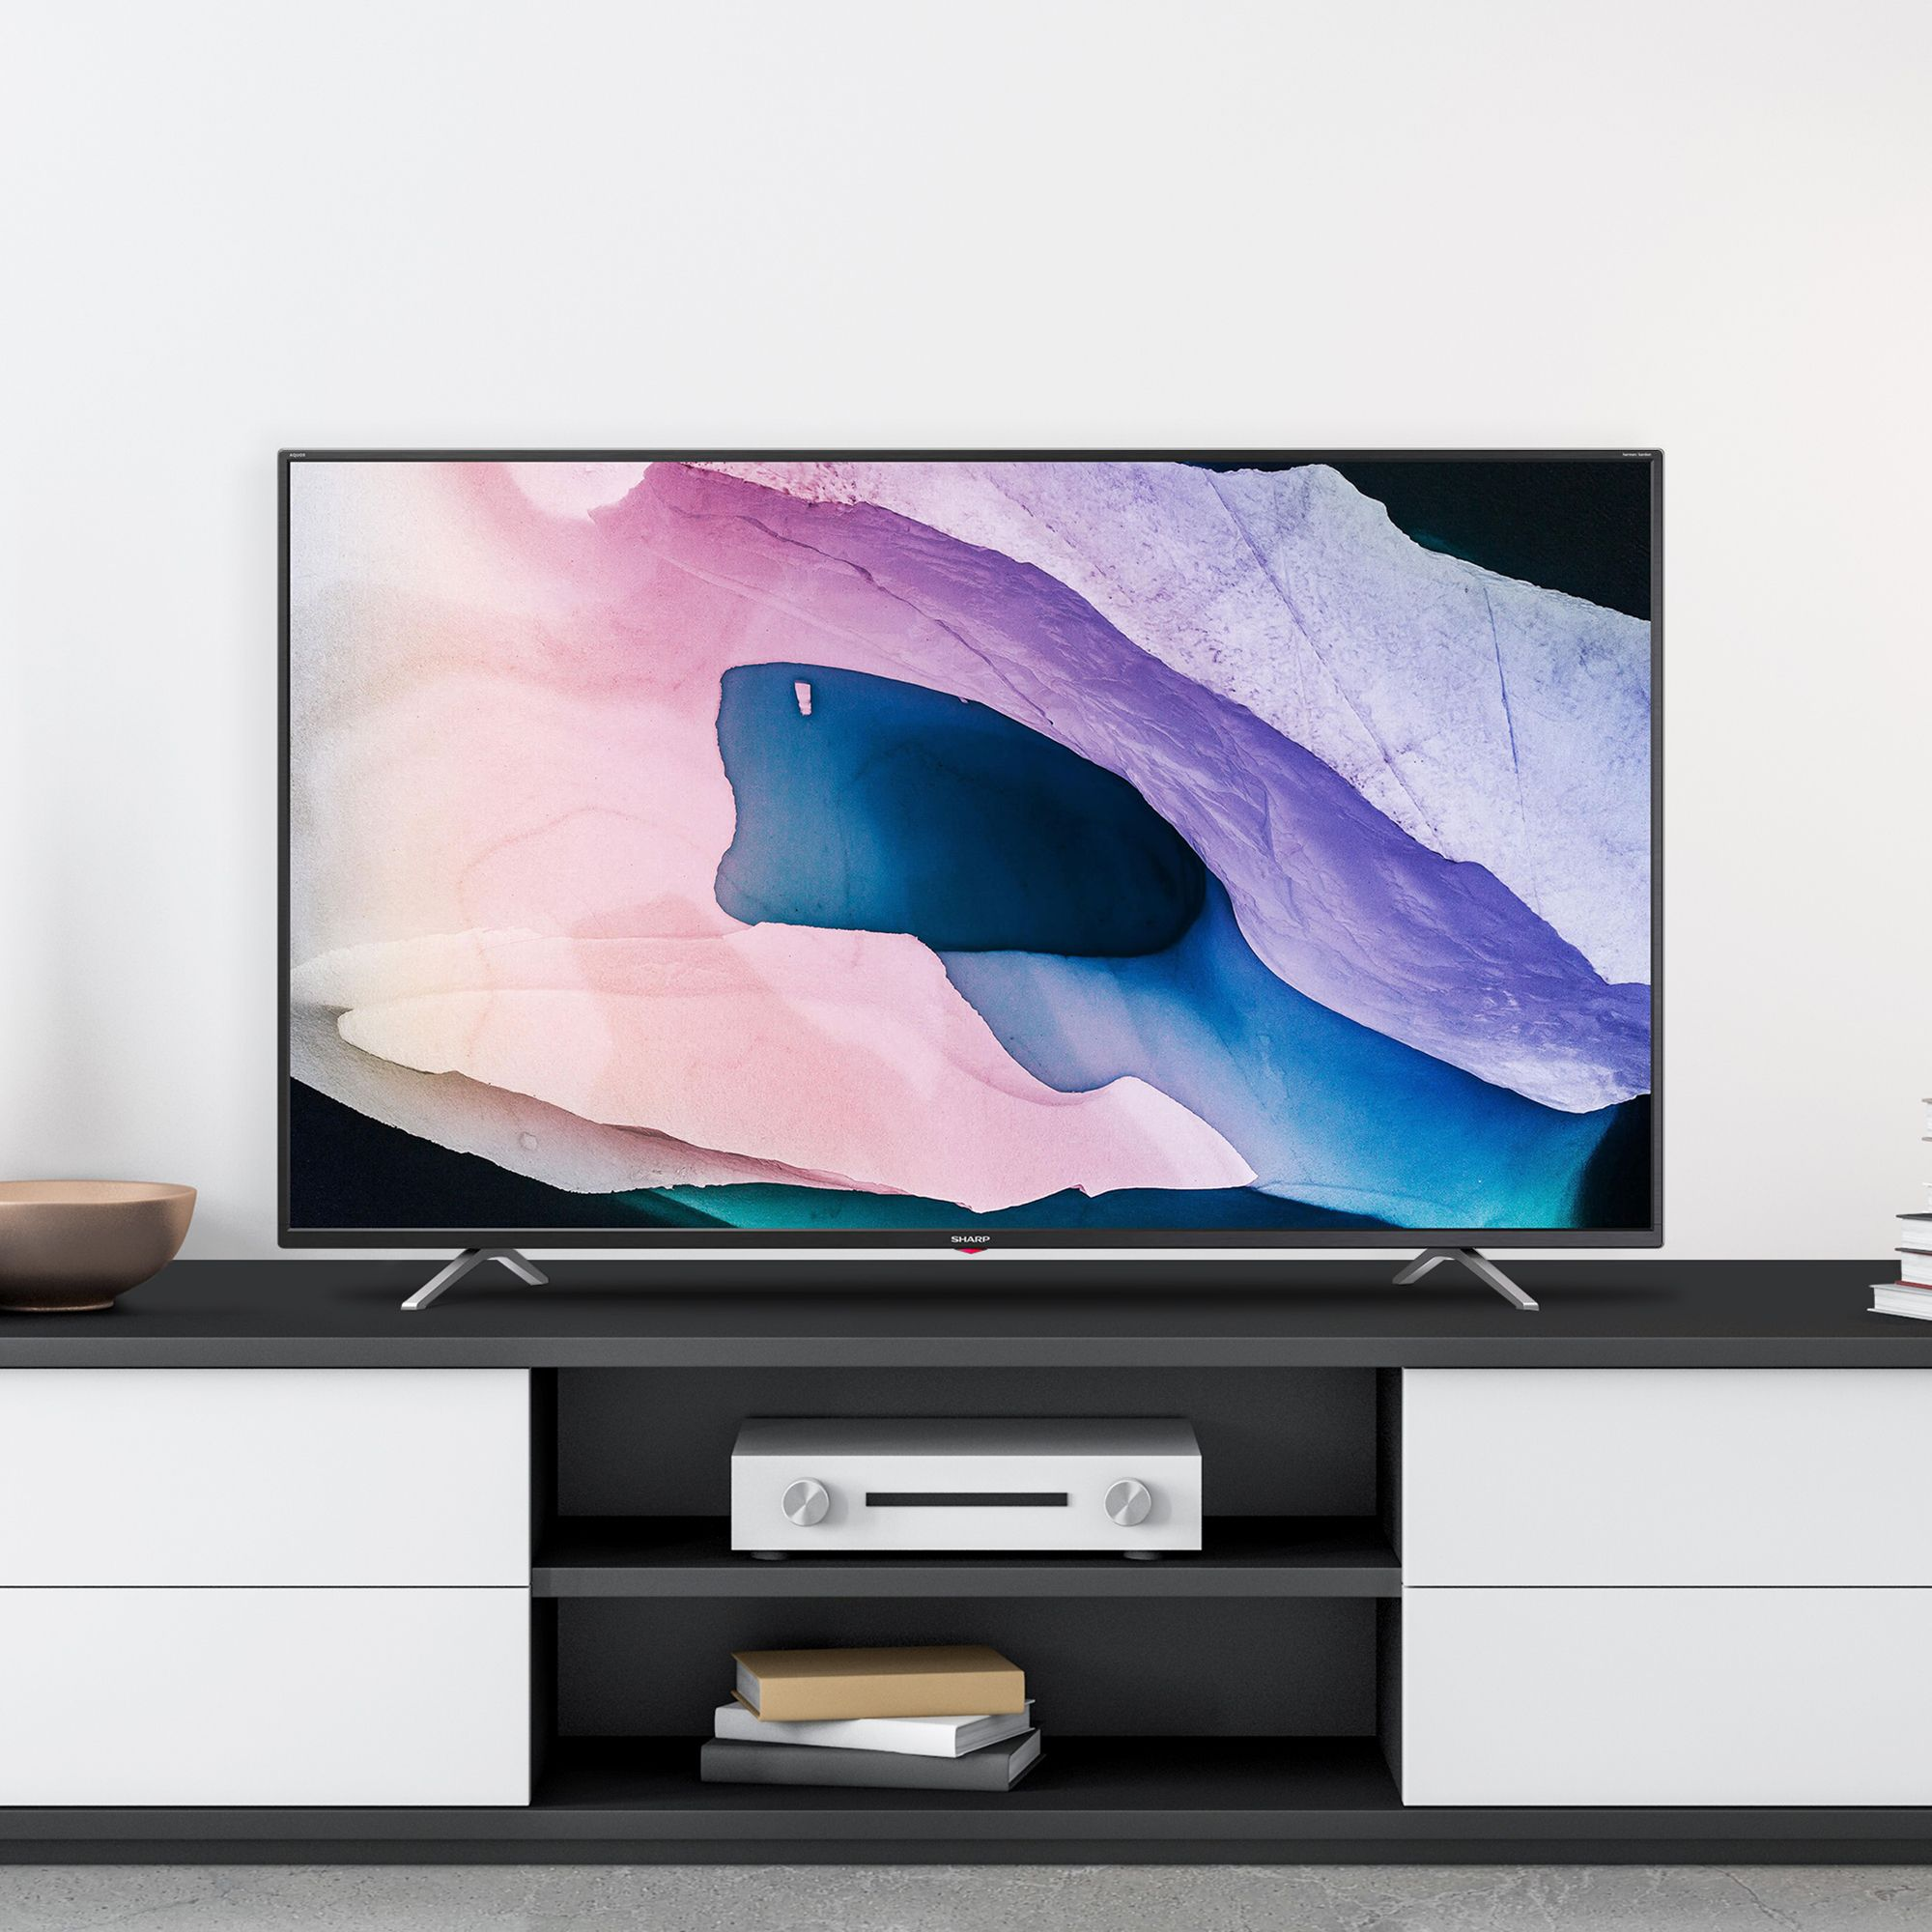 Image of 65BL3E Smart TV UltraHD 4K da 65 pollici